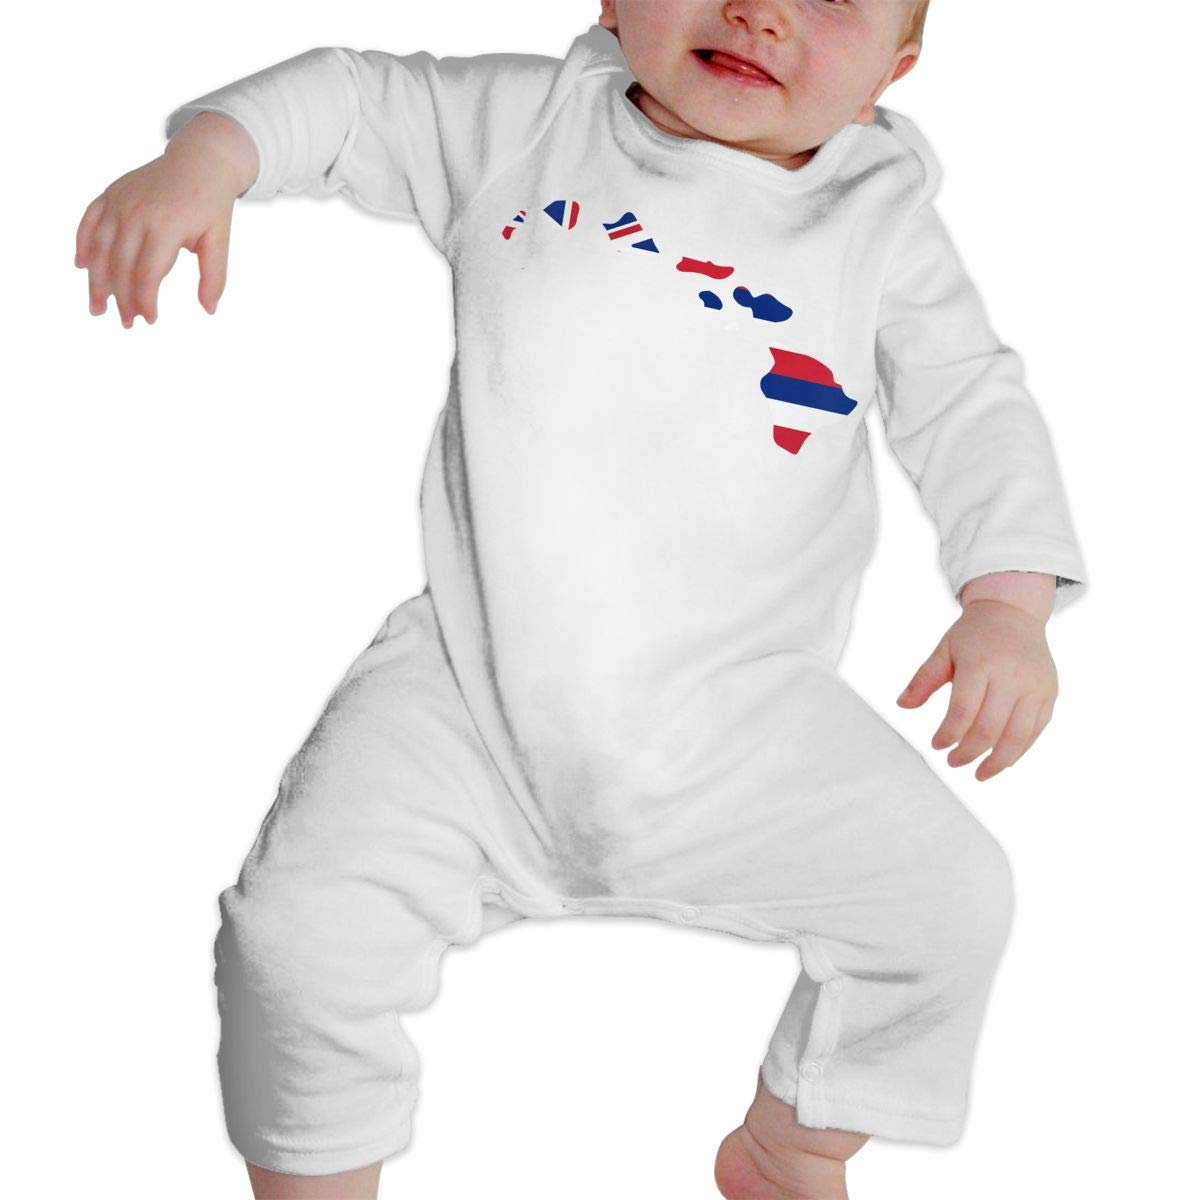 A1BY-5US Baby Infant Toddler Cotton Long Sleeve Hawaii Map Jumpsuit Romper One-Piece Romper Clothes